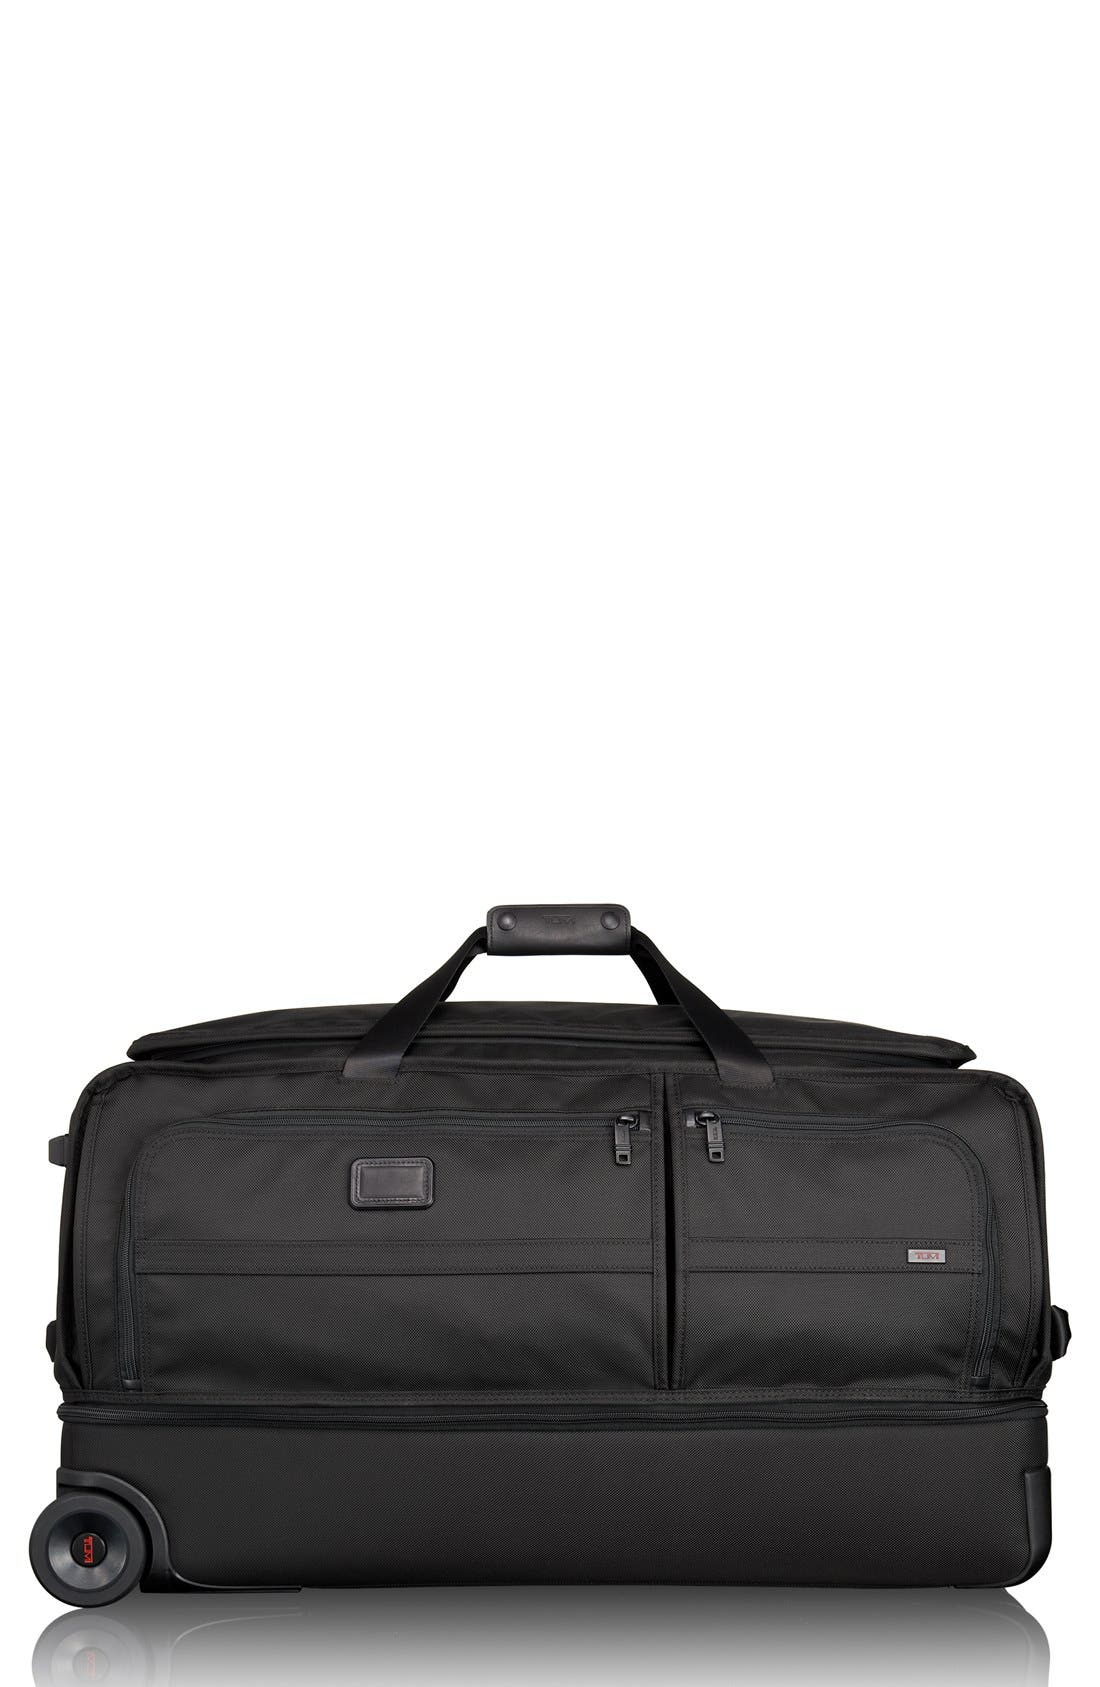 Alpha 2 31-Inch Rolling Two-Wheel Duffel Bag,                             Main thumbnail 1, color,                             Black